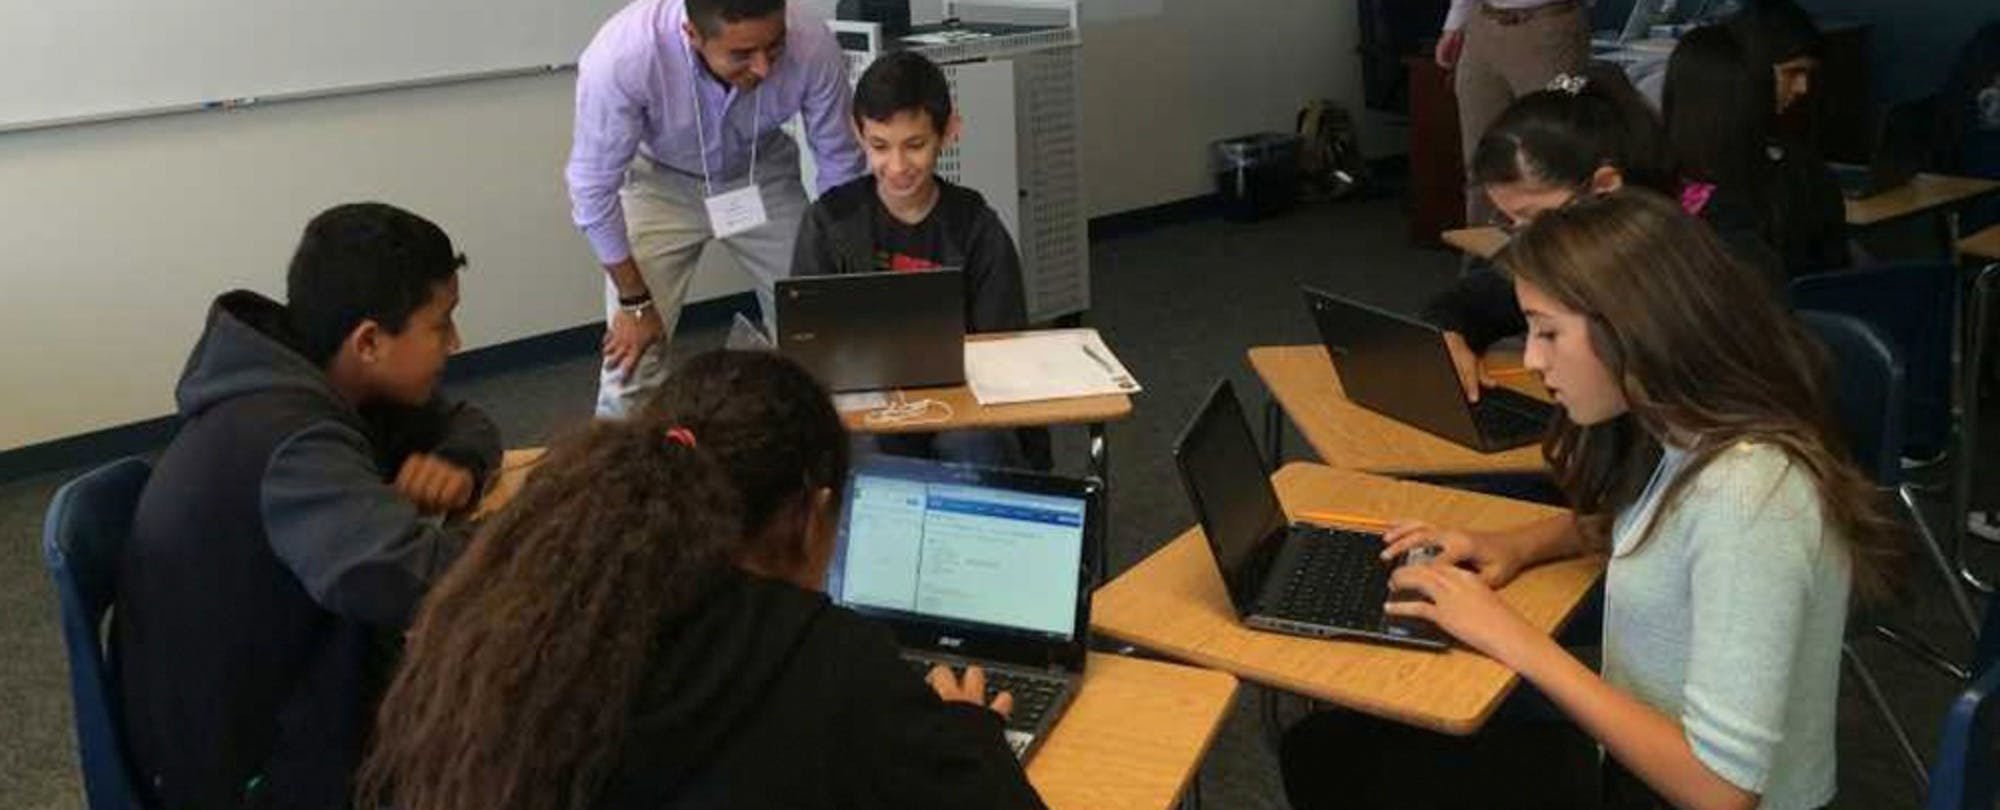 How Blended Learning Changed My Classroom Experience: A Student Perspective